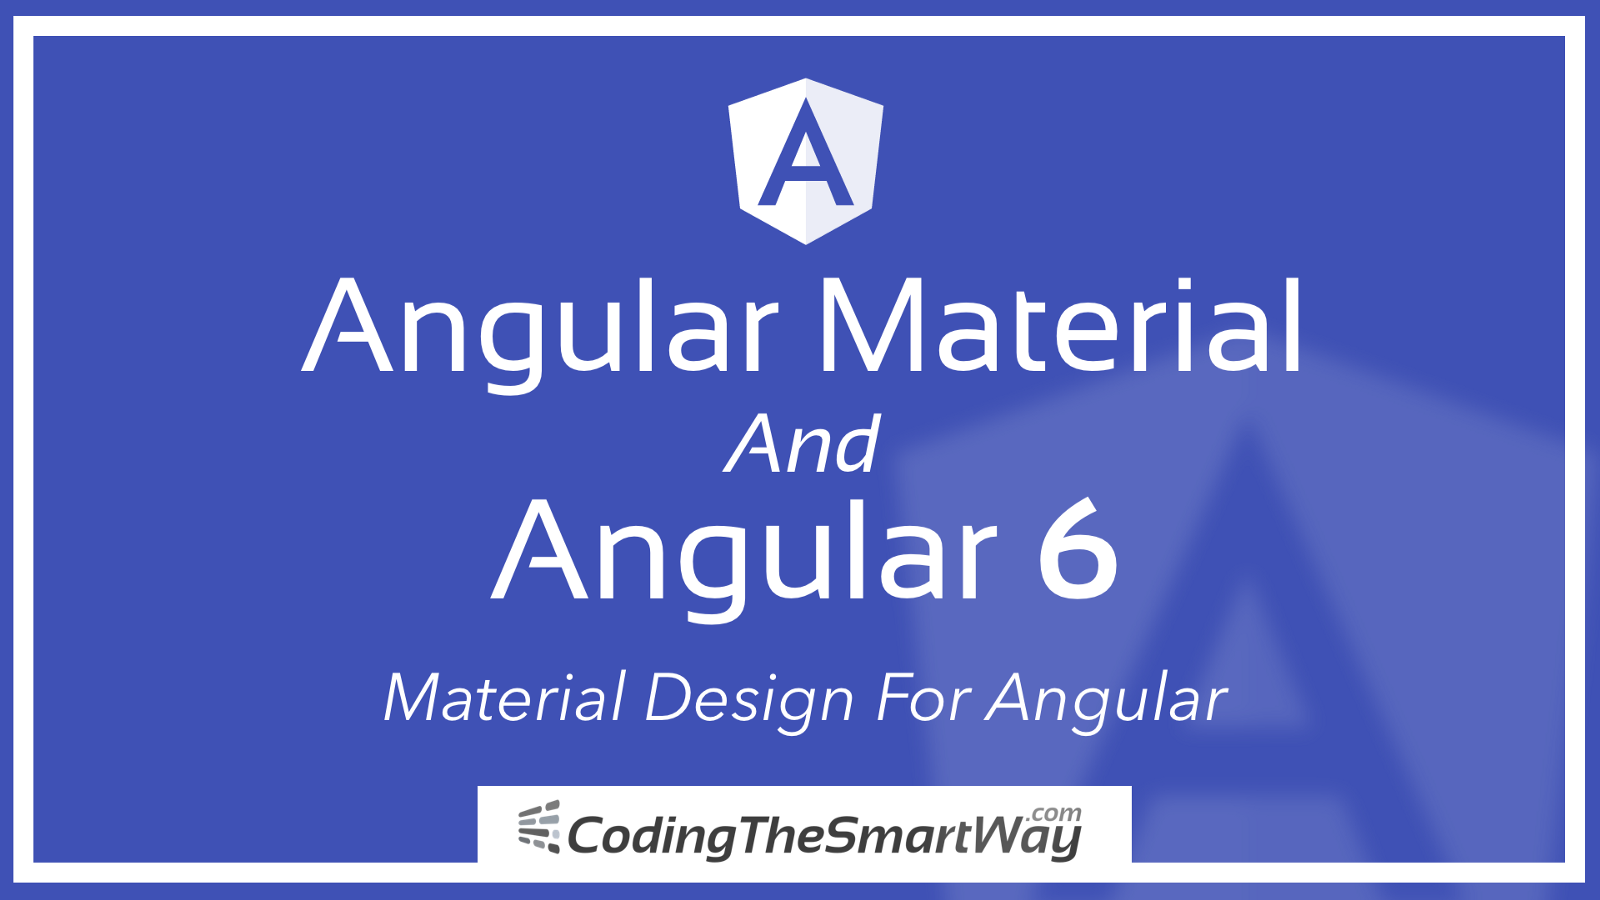 angular material for angular 6